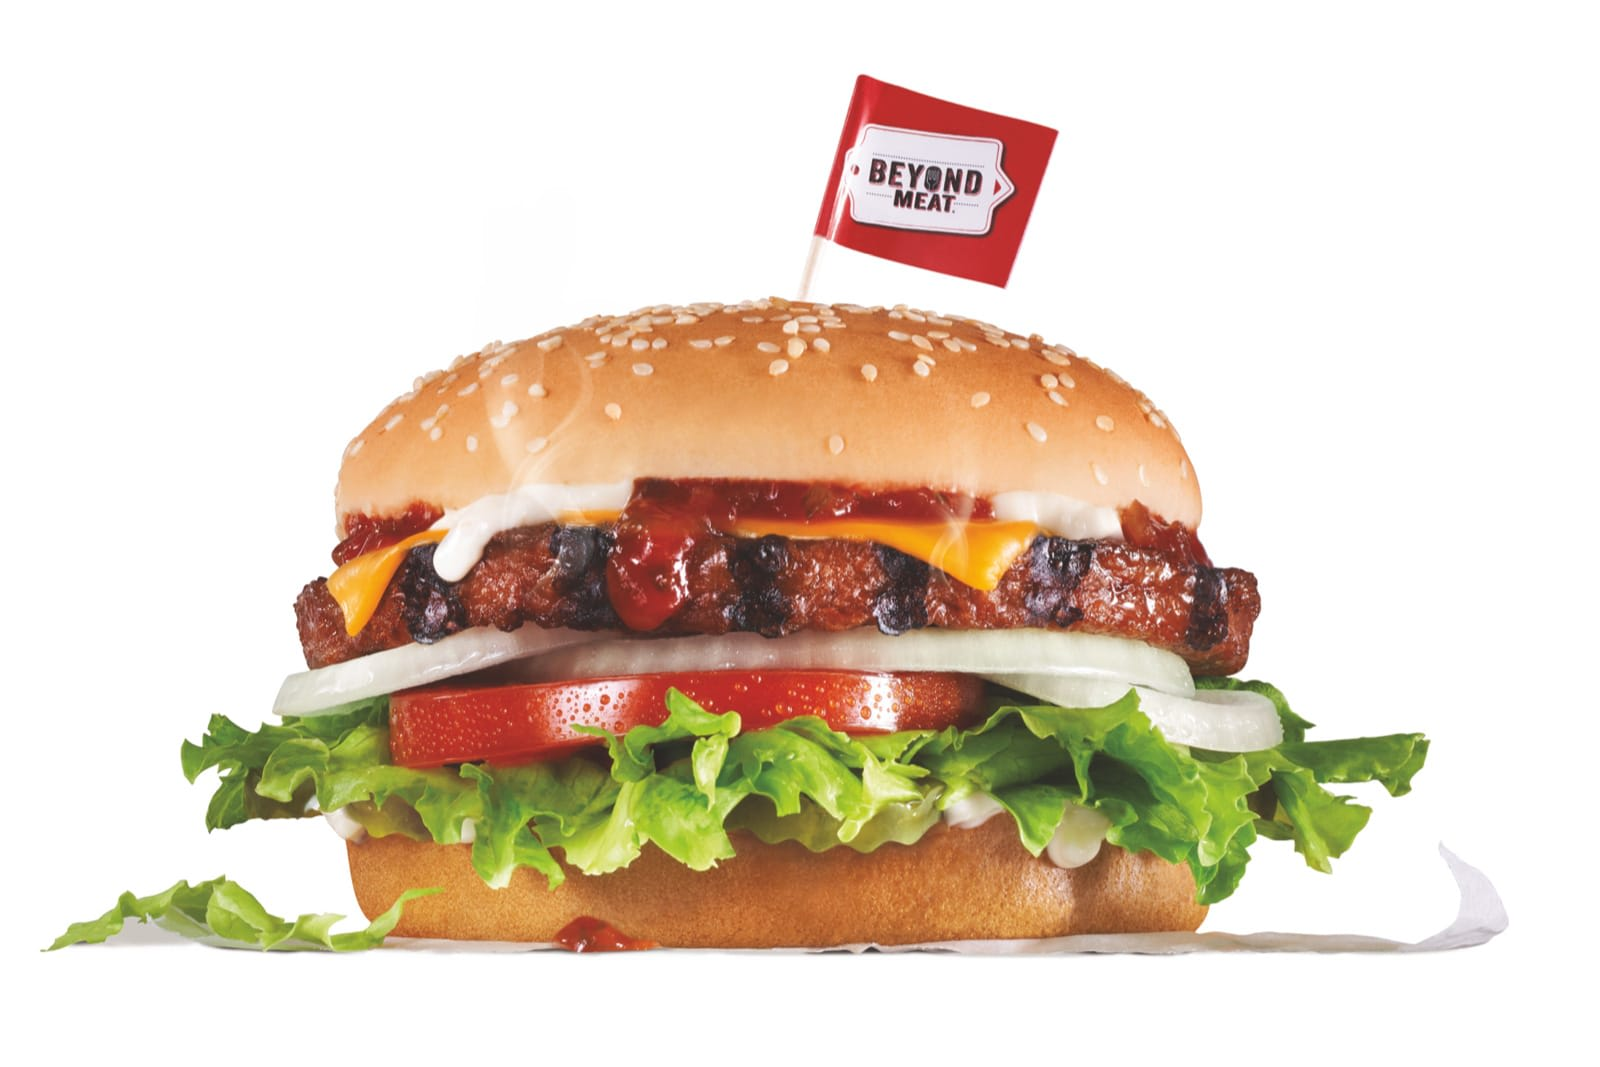 Meatless Beyond Burgers Come To Carl S Jr Restaurants